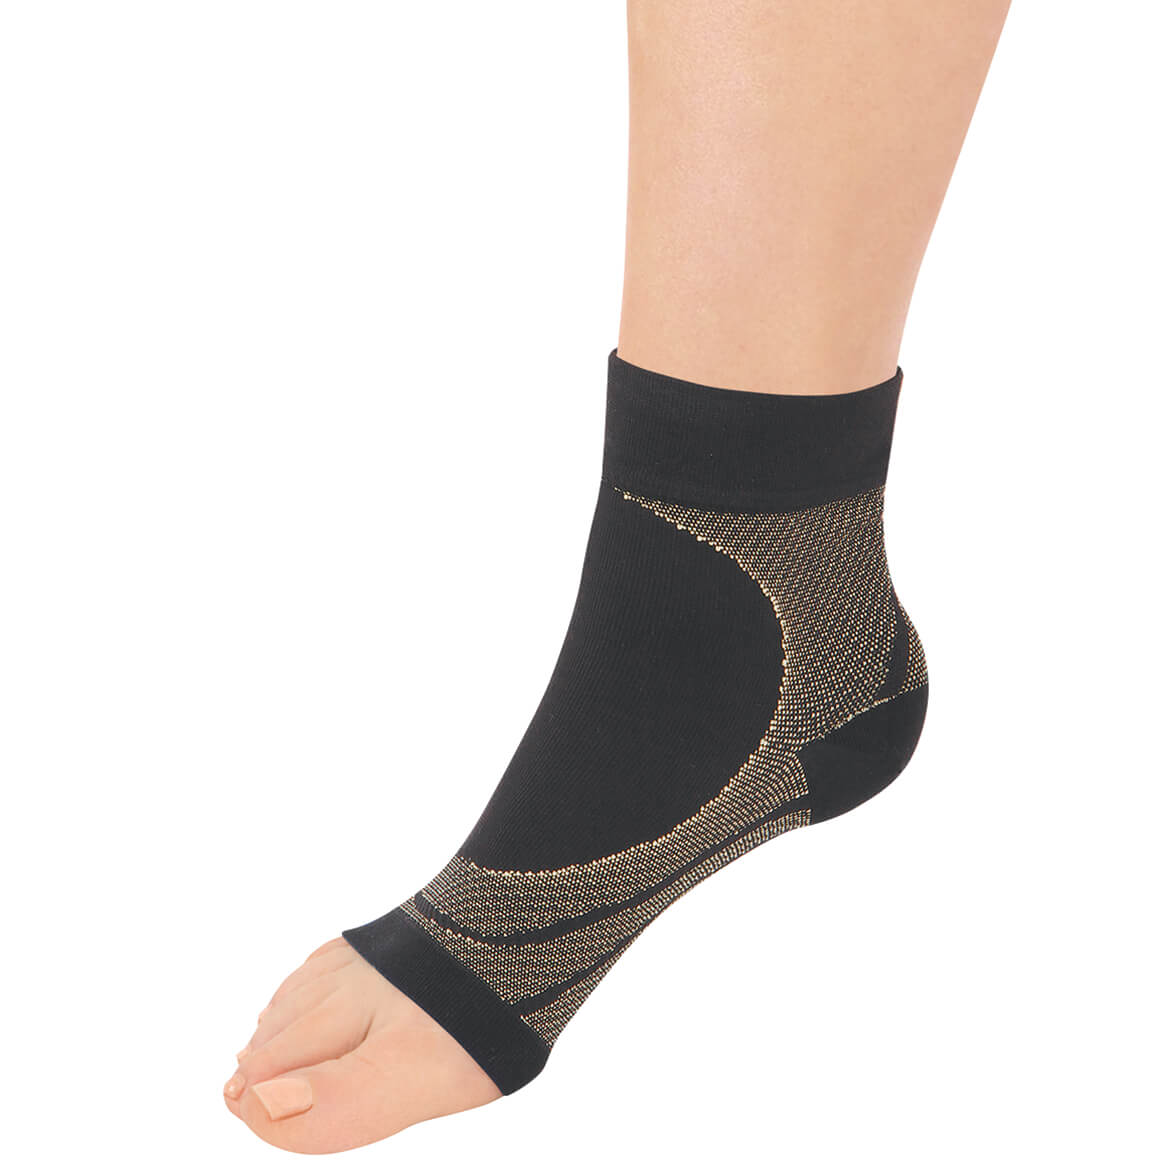 Copper Compression Ankle Support-370125